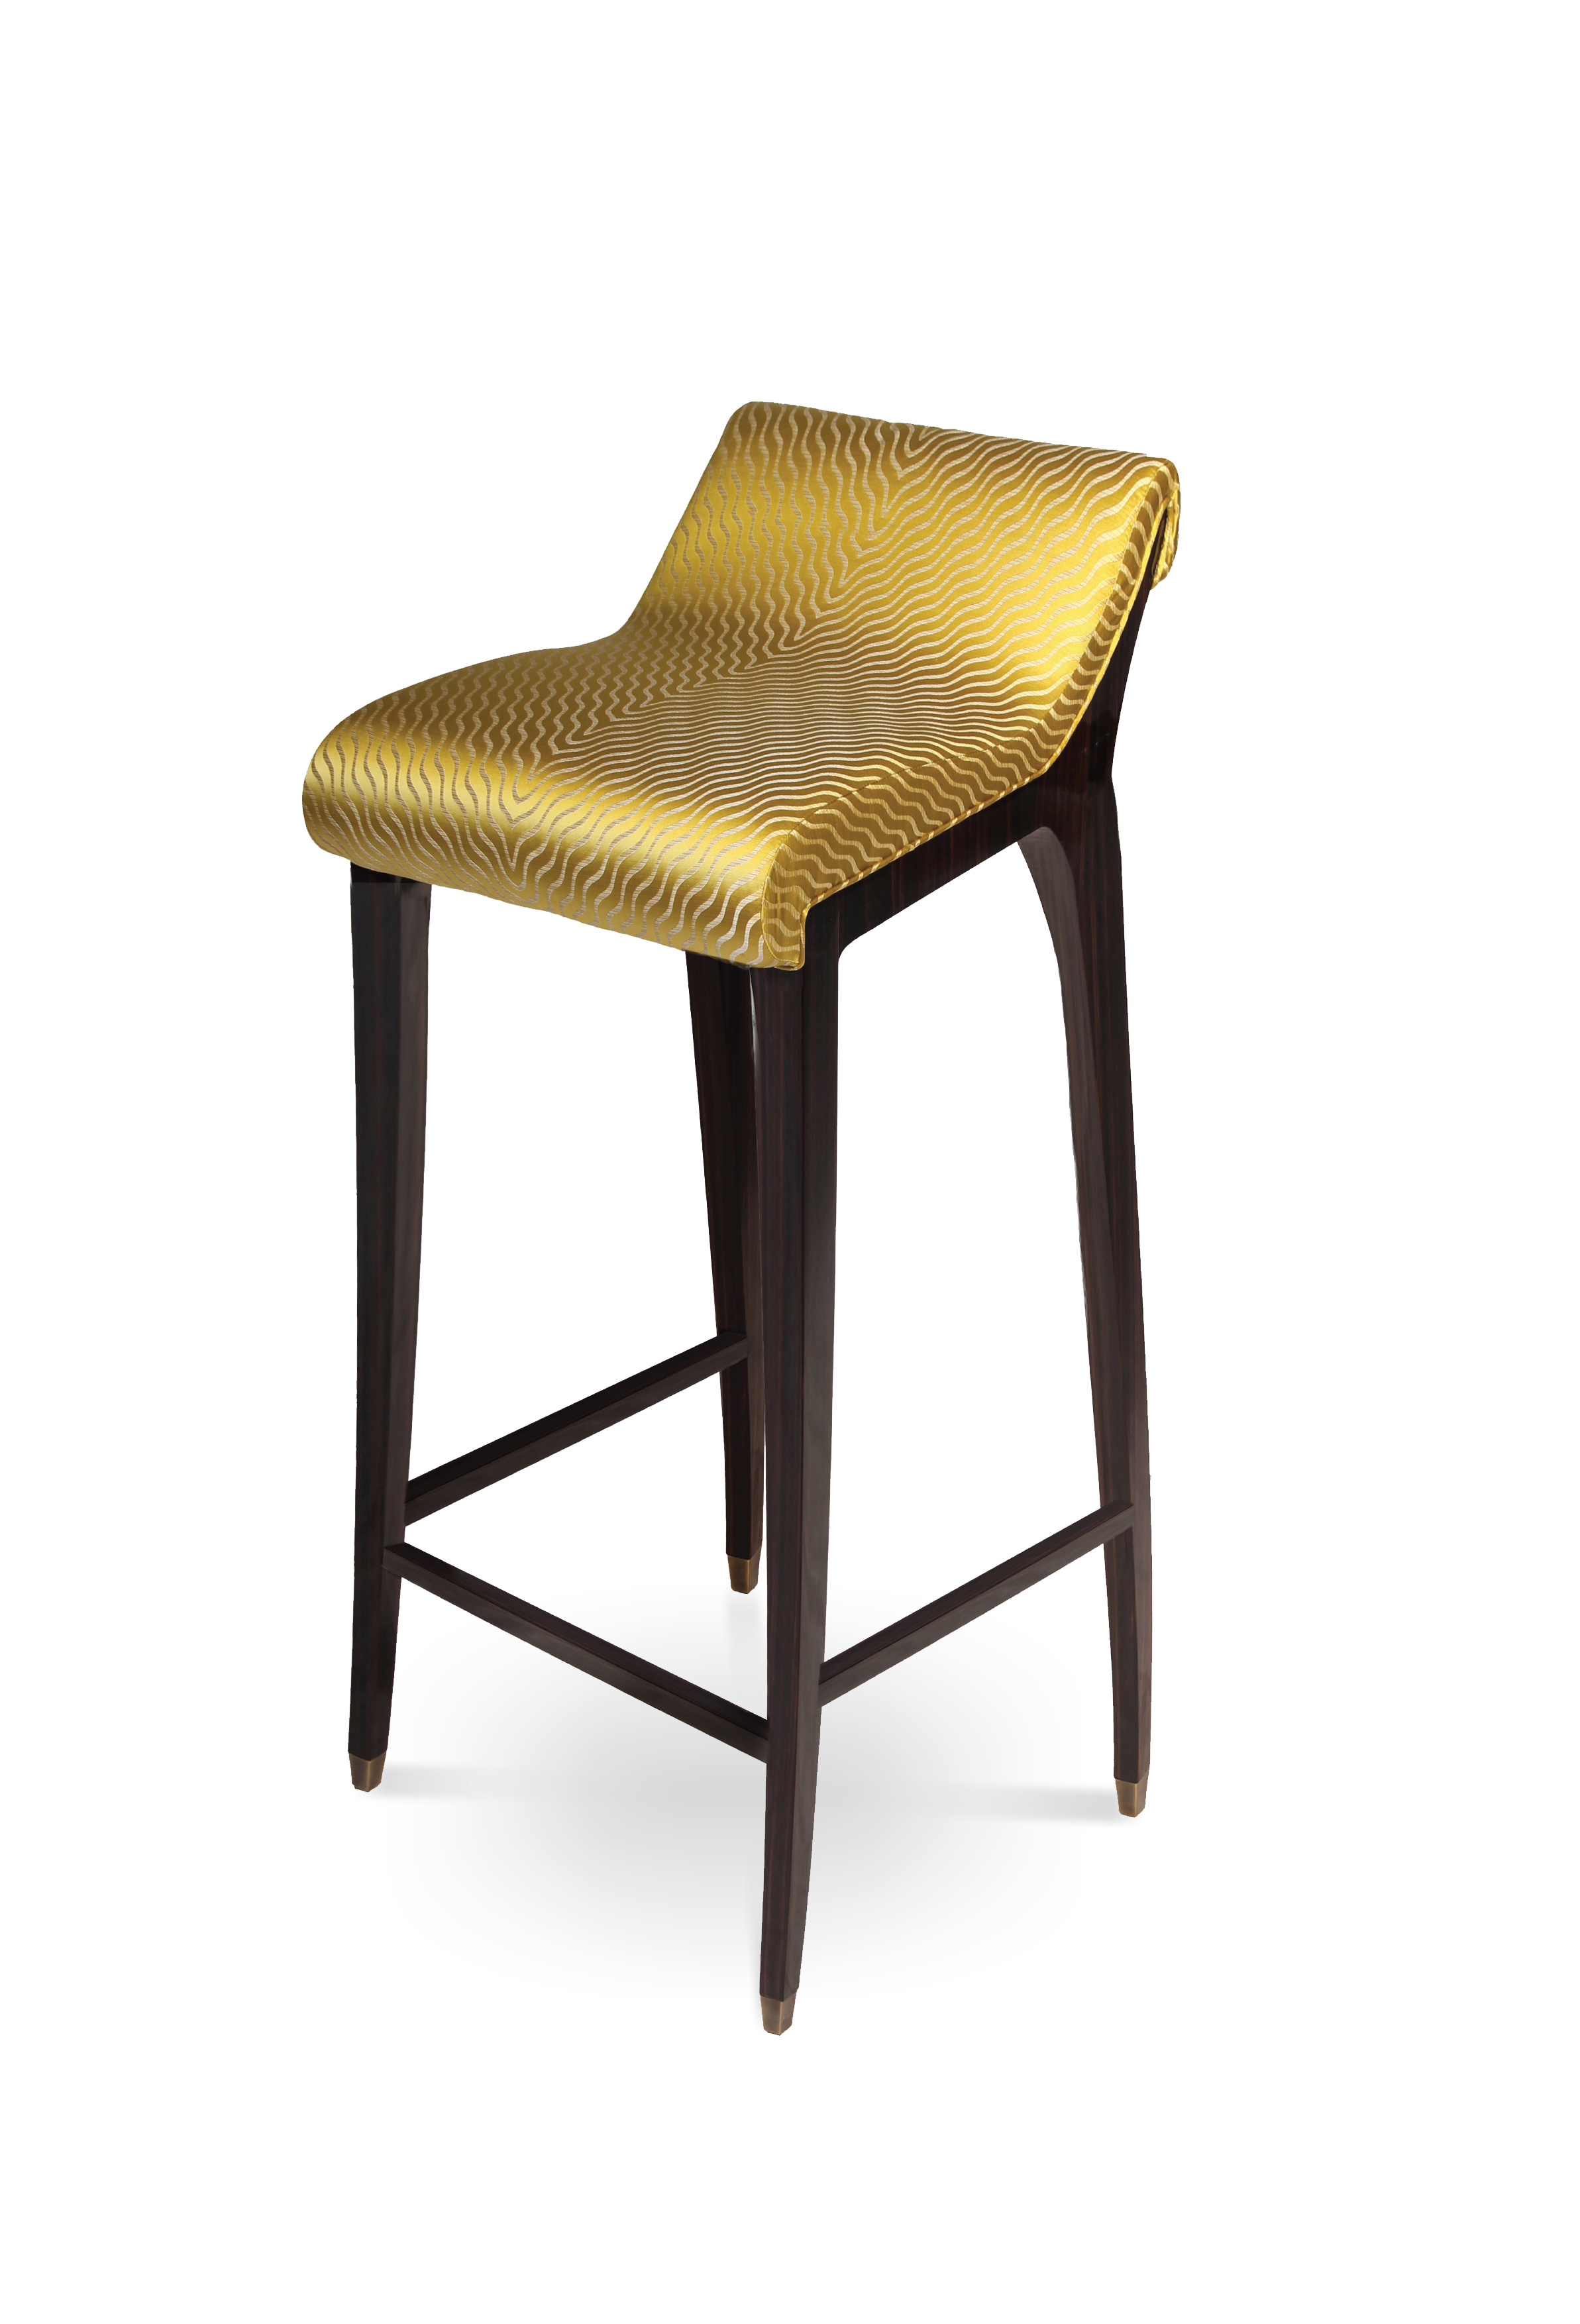 10 Extravagant Bar Stools That Will Inspire You